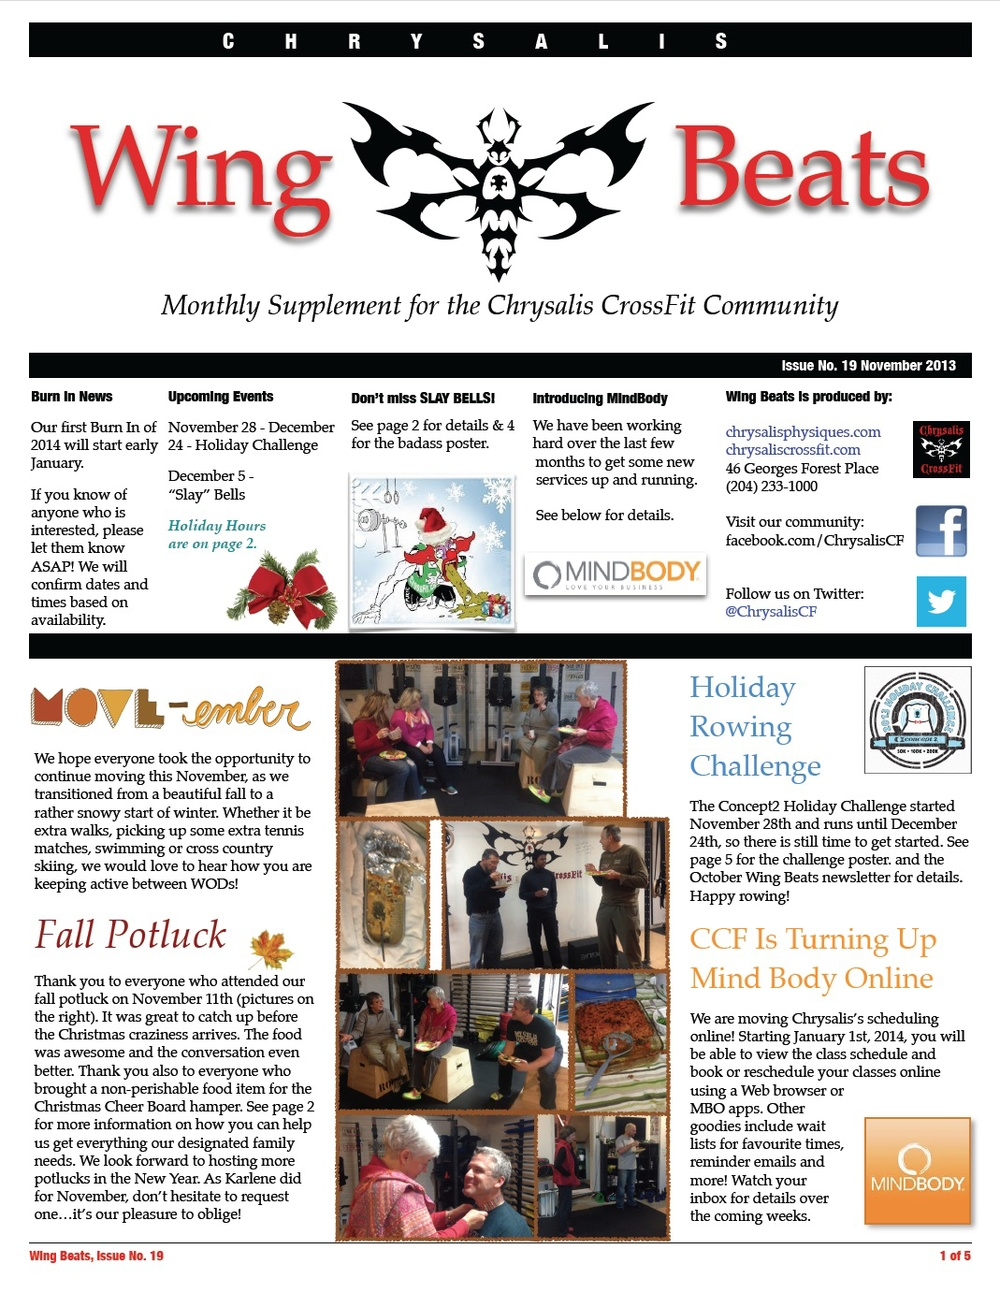 WingBeats Issue #19 - November 2013